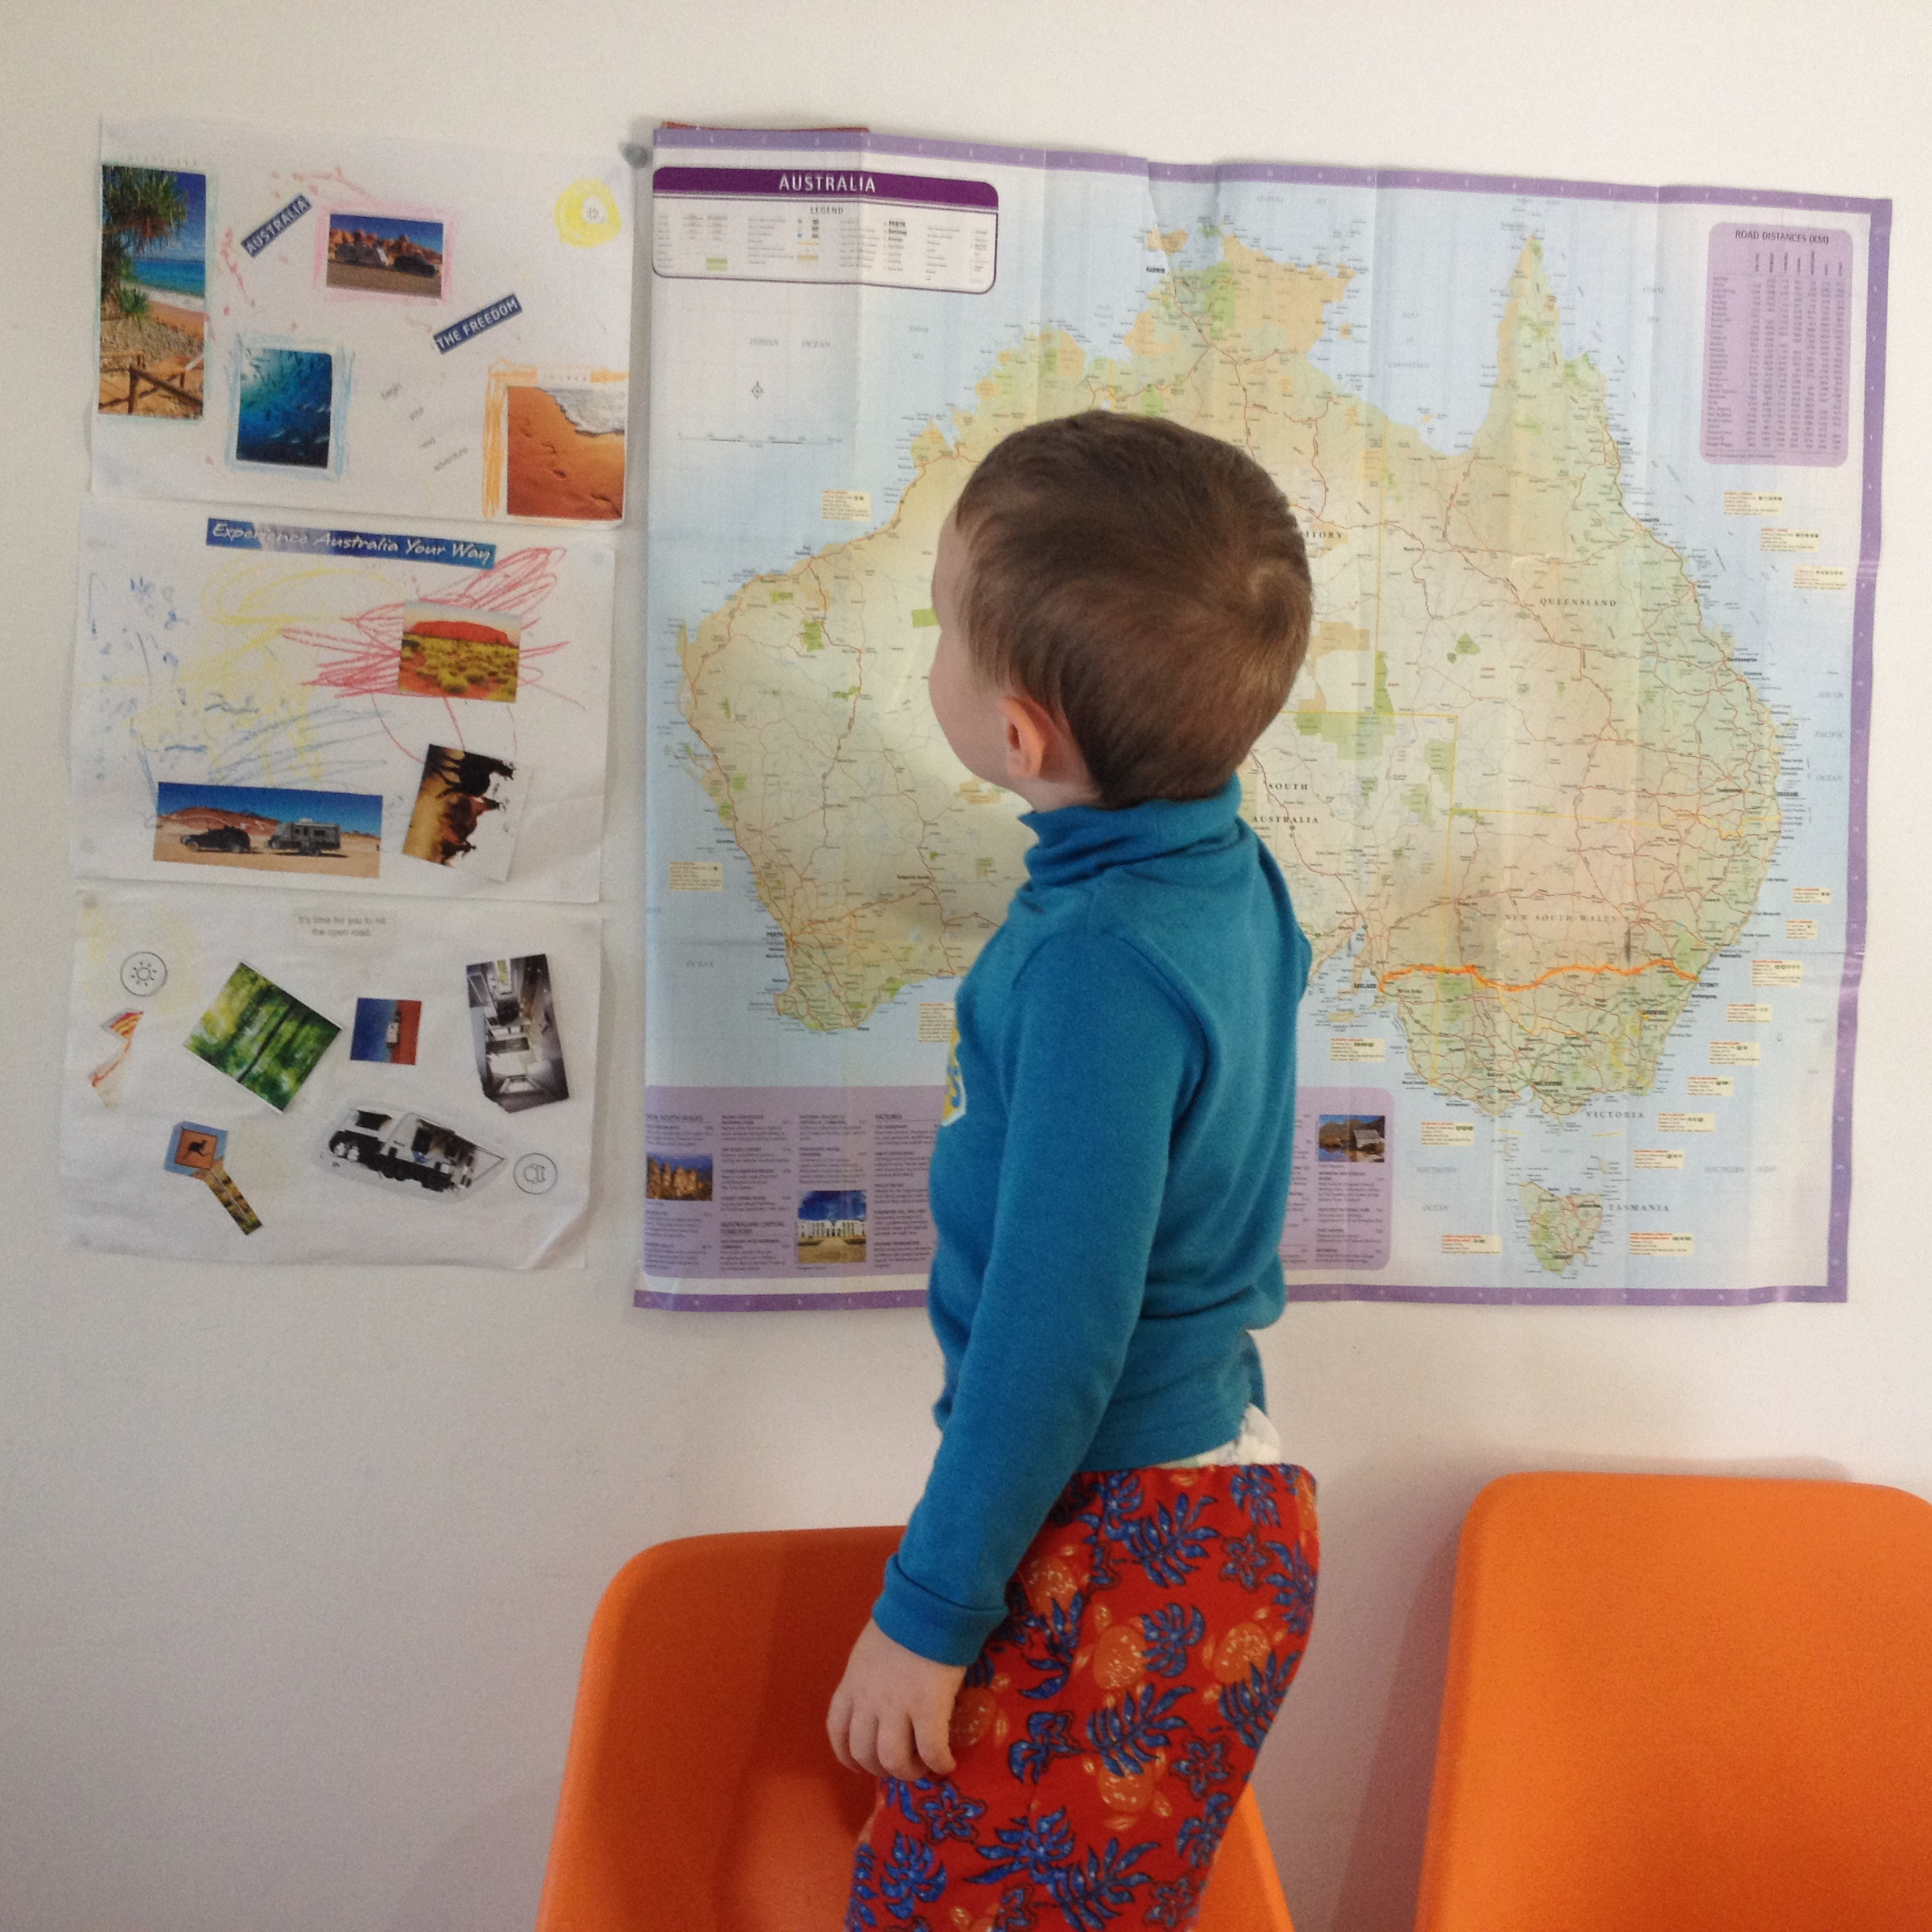 A boy looking at a map of Australia